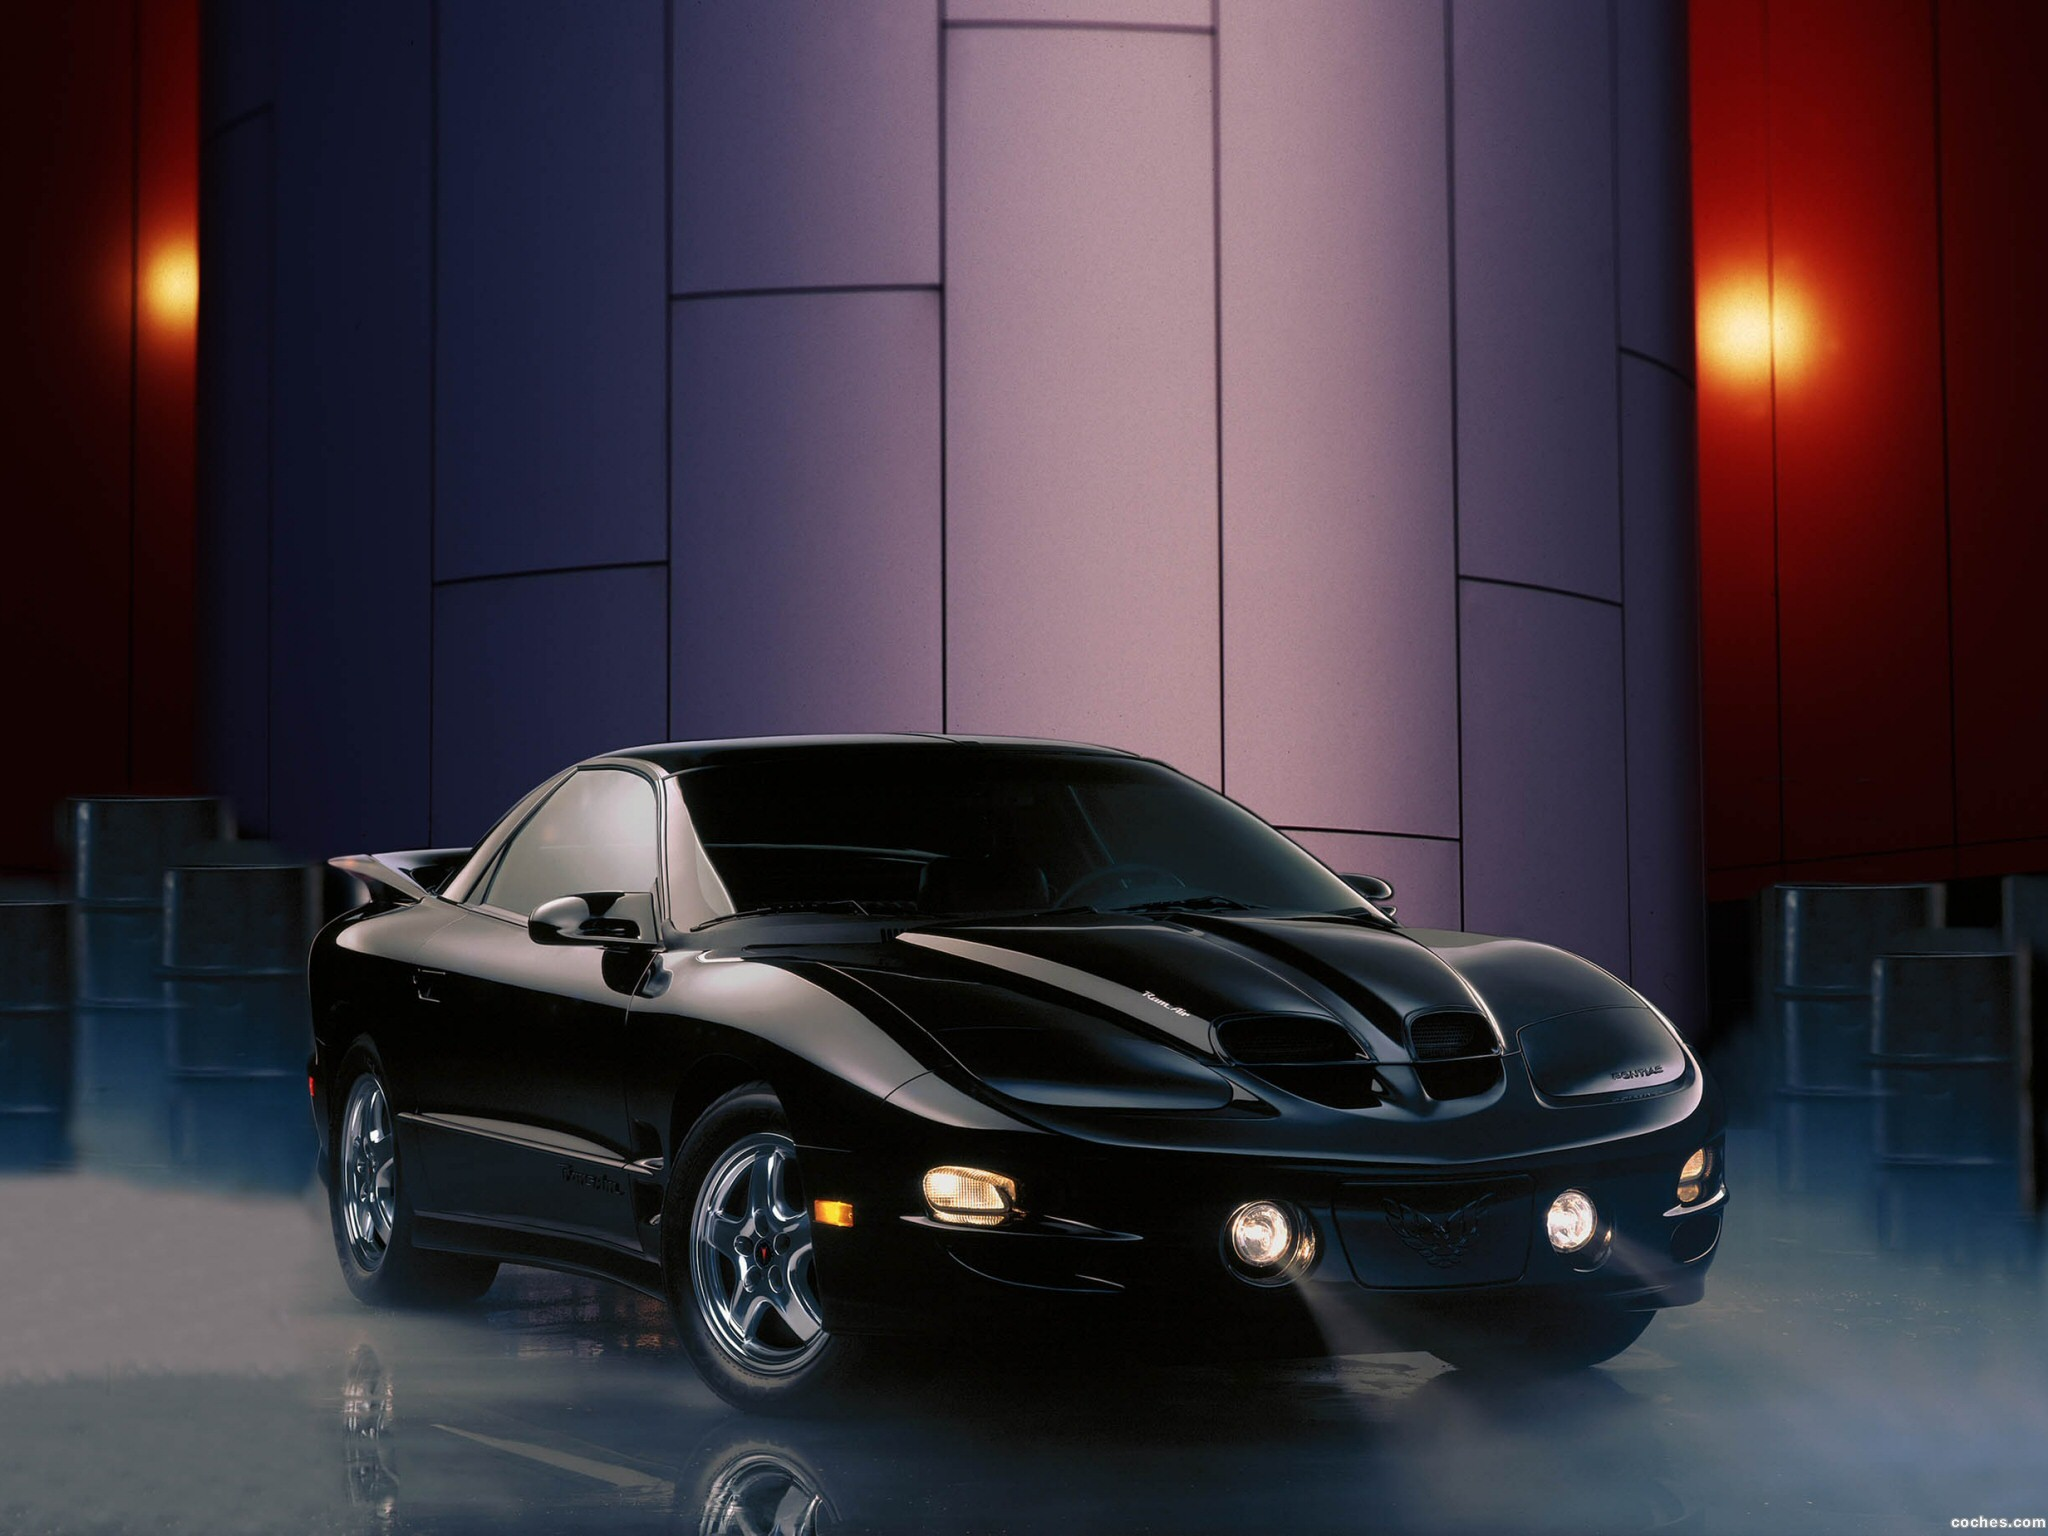 Foto 0 de Pontiac Firebird Trans Am Ram Air 1998-2002